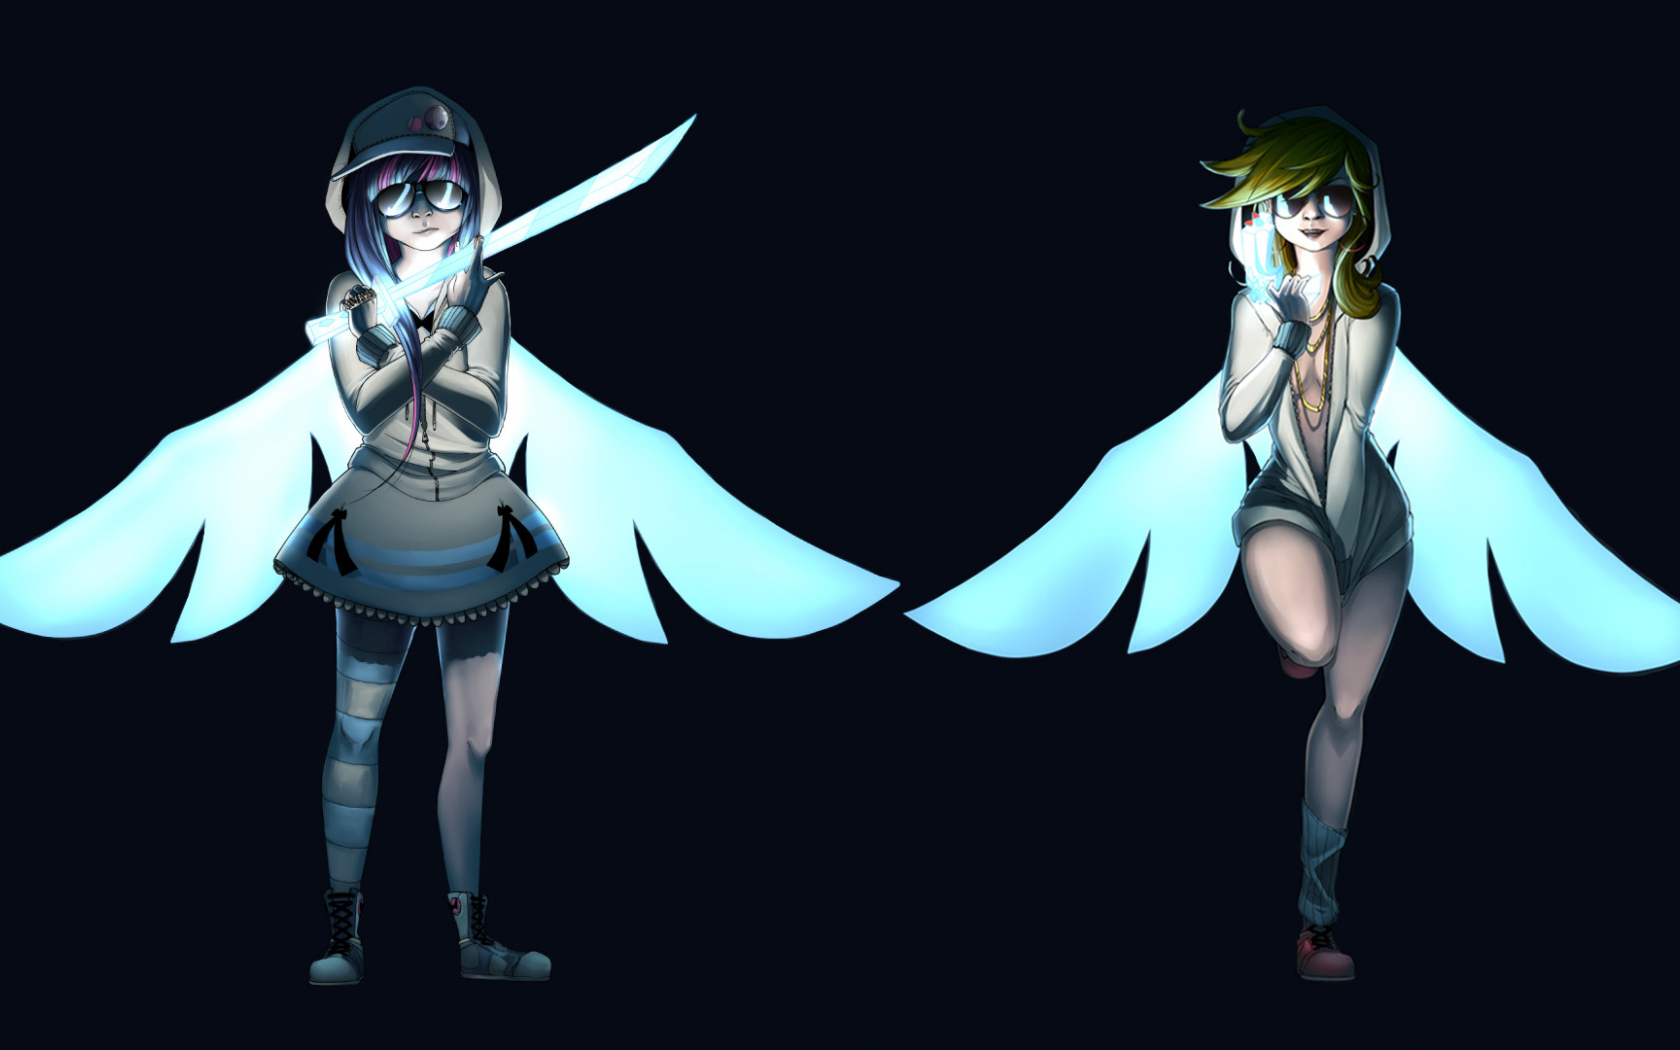 Free Download Coders Wallpaper Abyss Anime Panty Stocking With